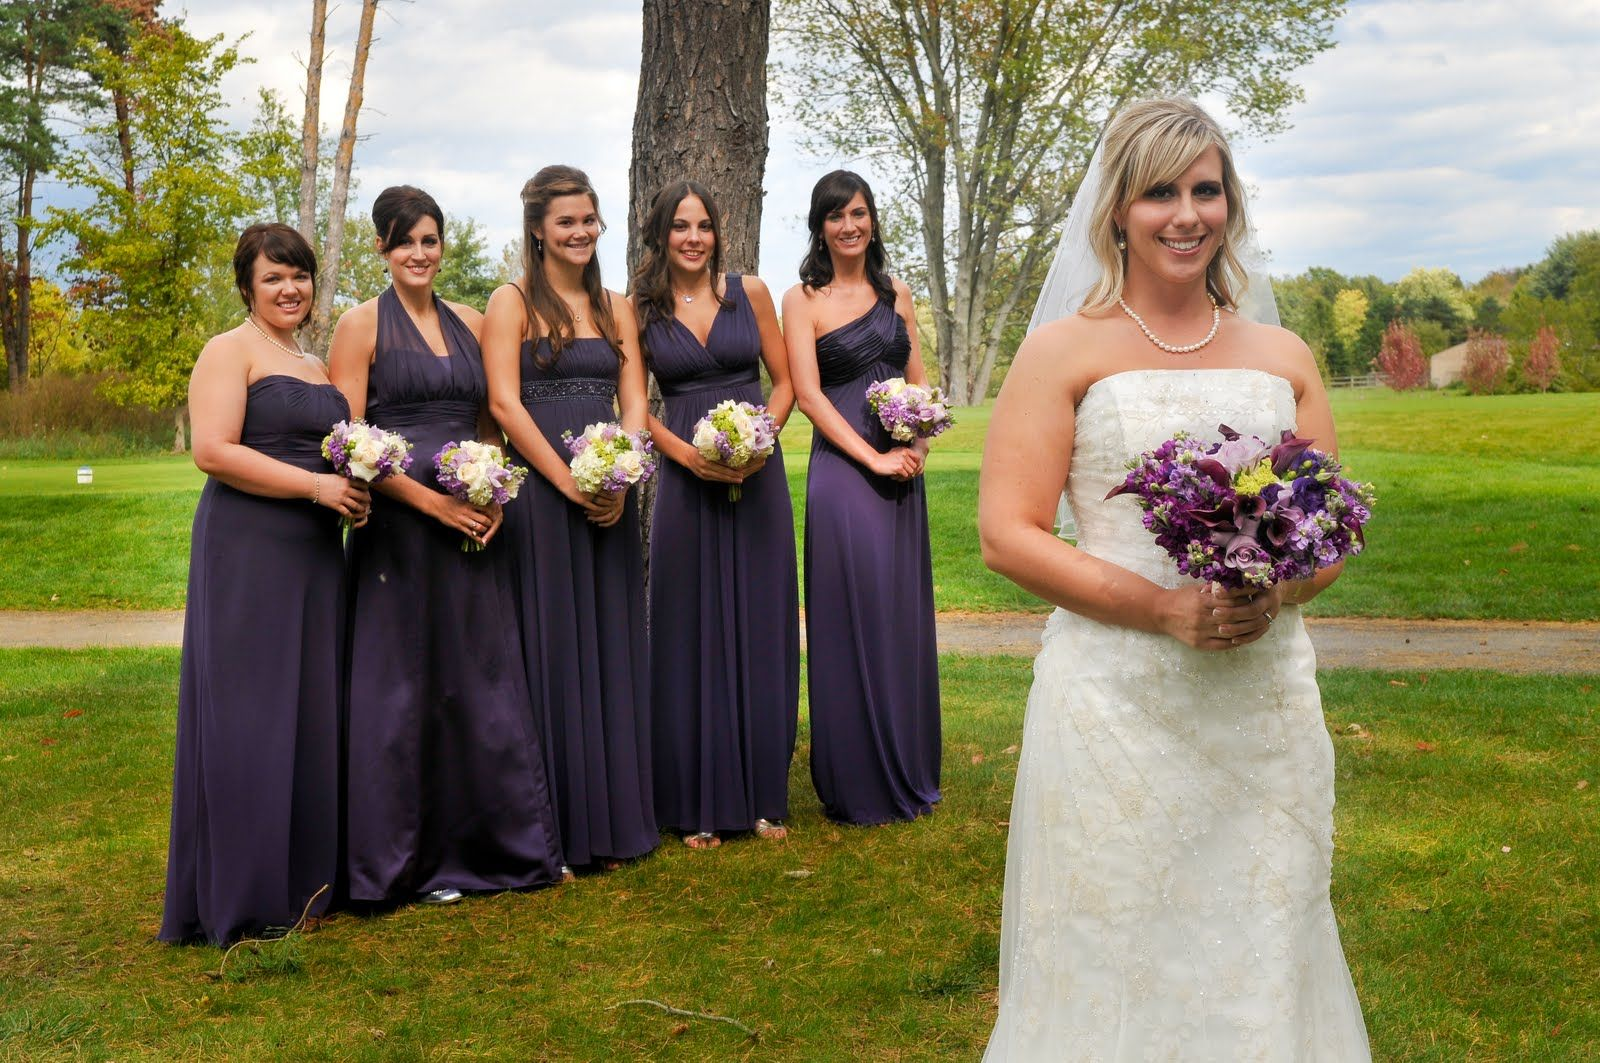 Love bridesmaids dresses but in navy blue or deep turquoise love bridesmaids dresses but in navy blue or deep turquoise teal ombrellifo Choice Image